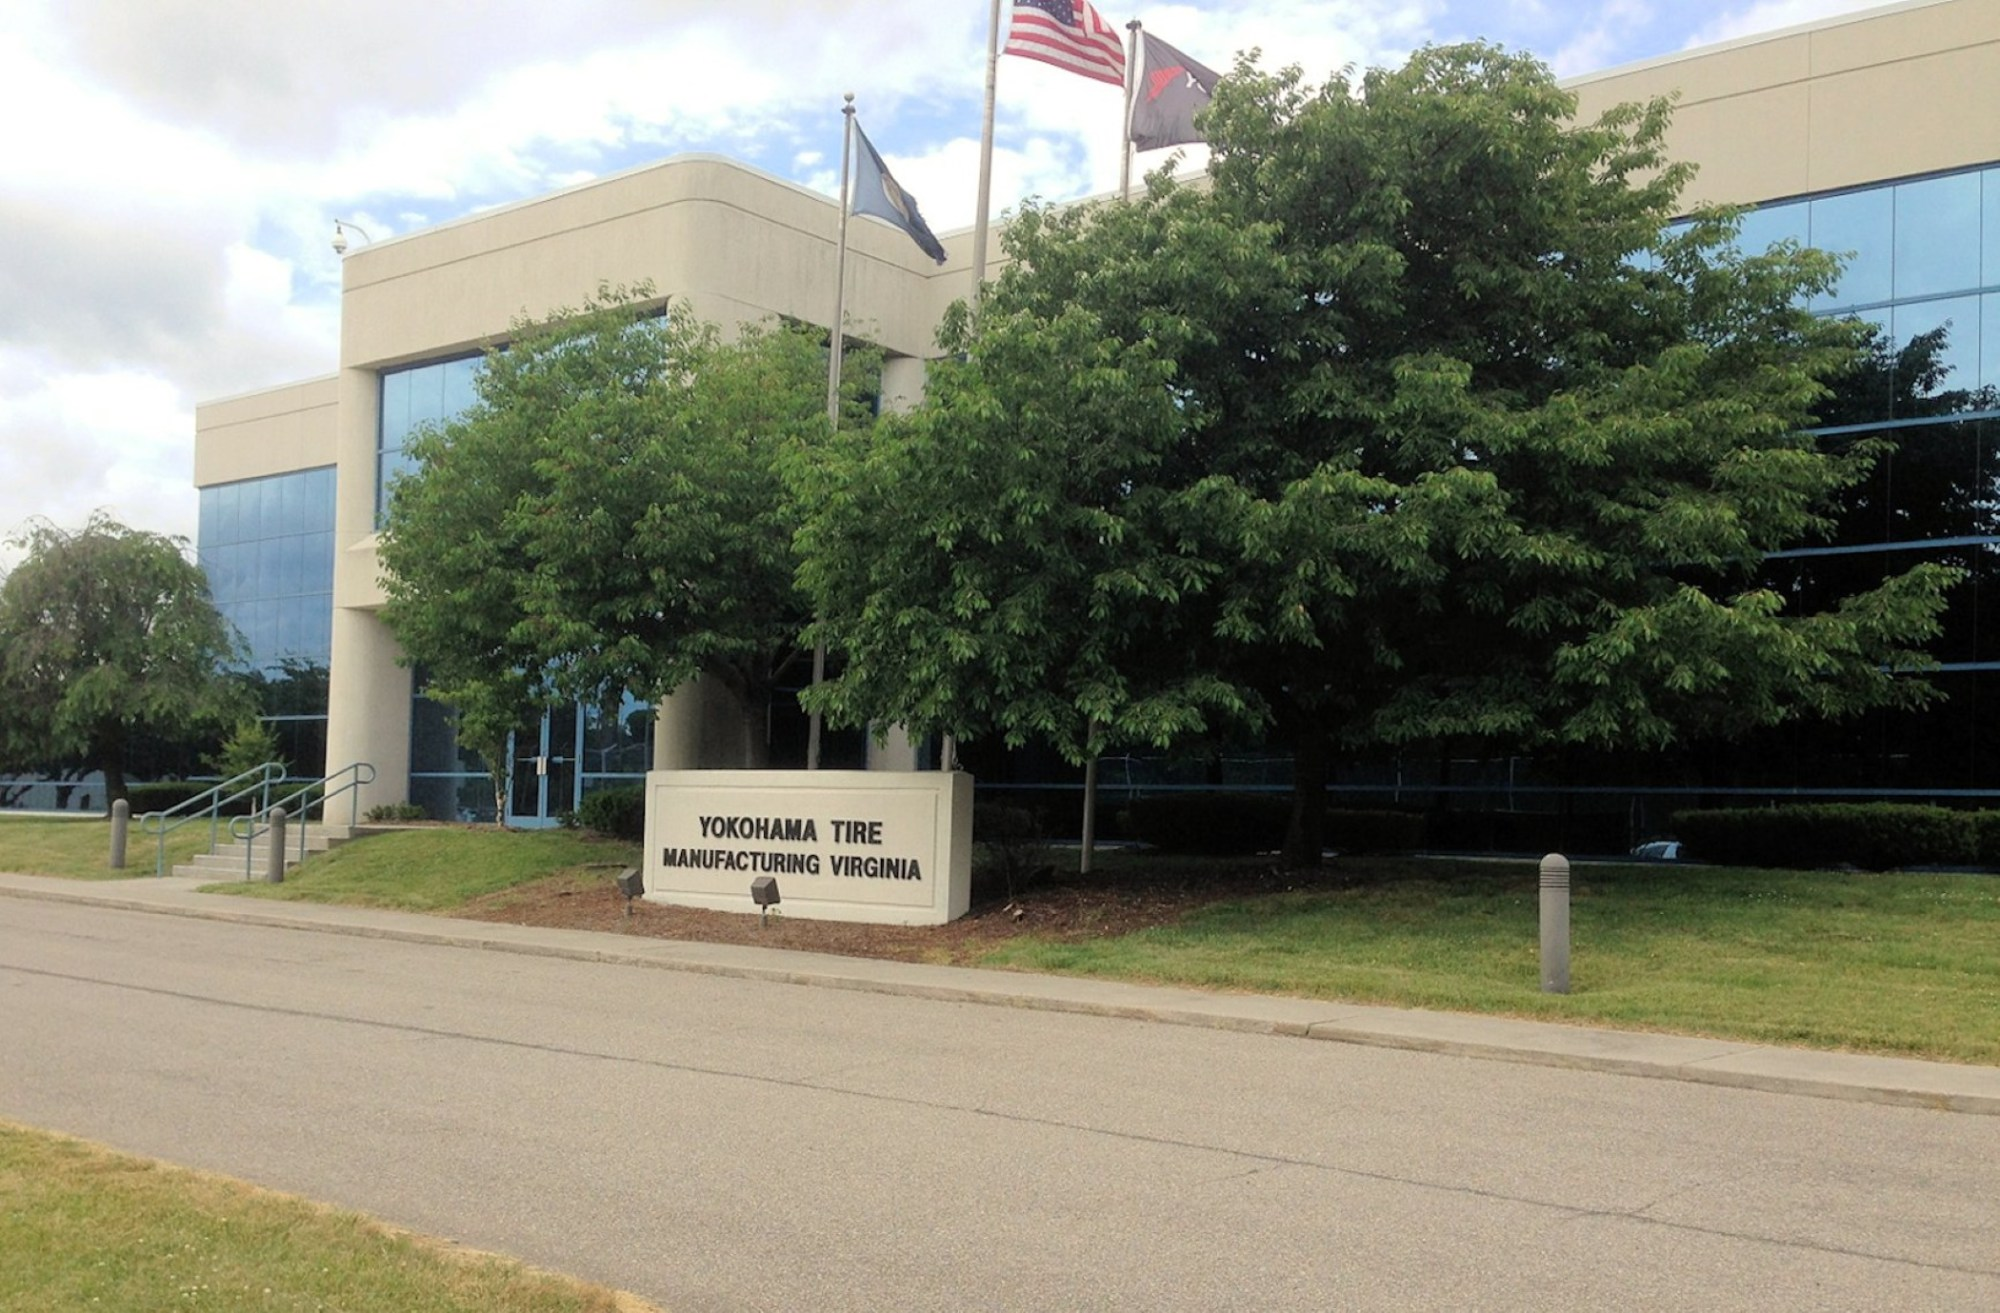 The Yokohama Tire Manufacturing Virginia plant in Salem has suspended production until further notice due to COVID-19. (Photo: Courtesy Bill Groak, Kovel Fuller)